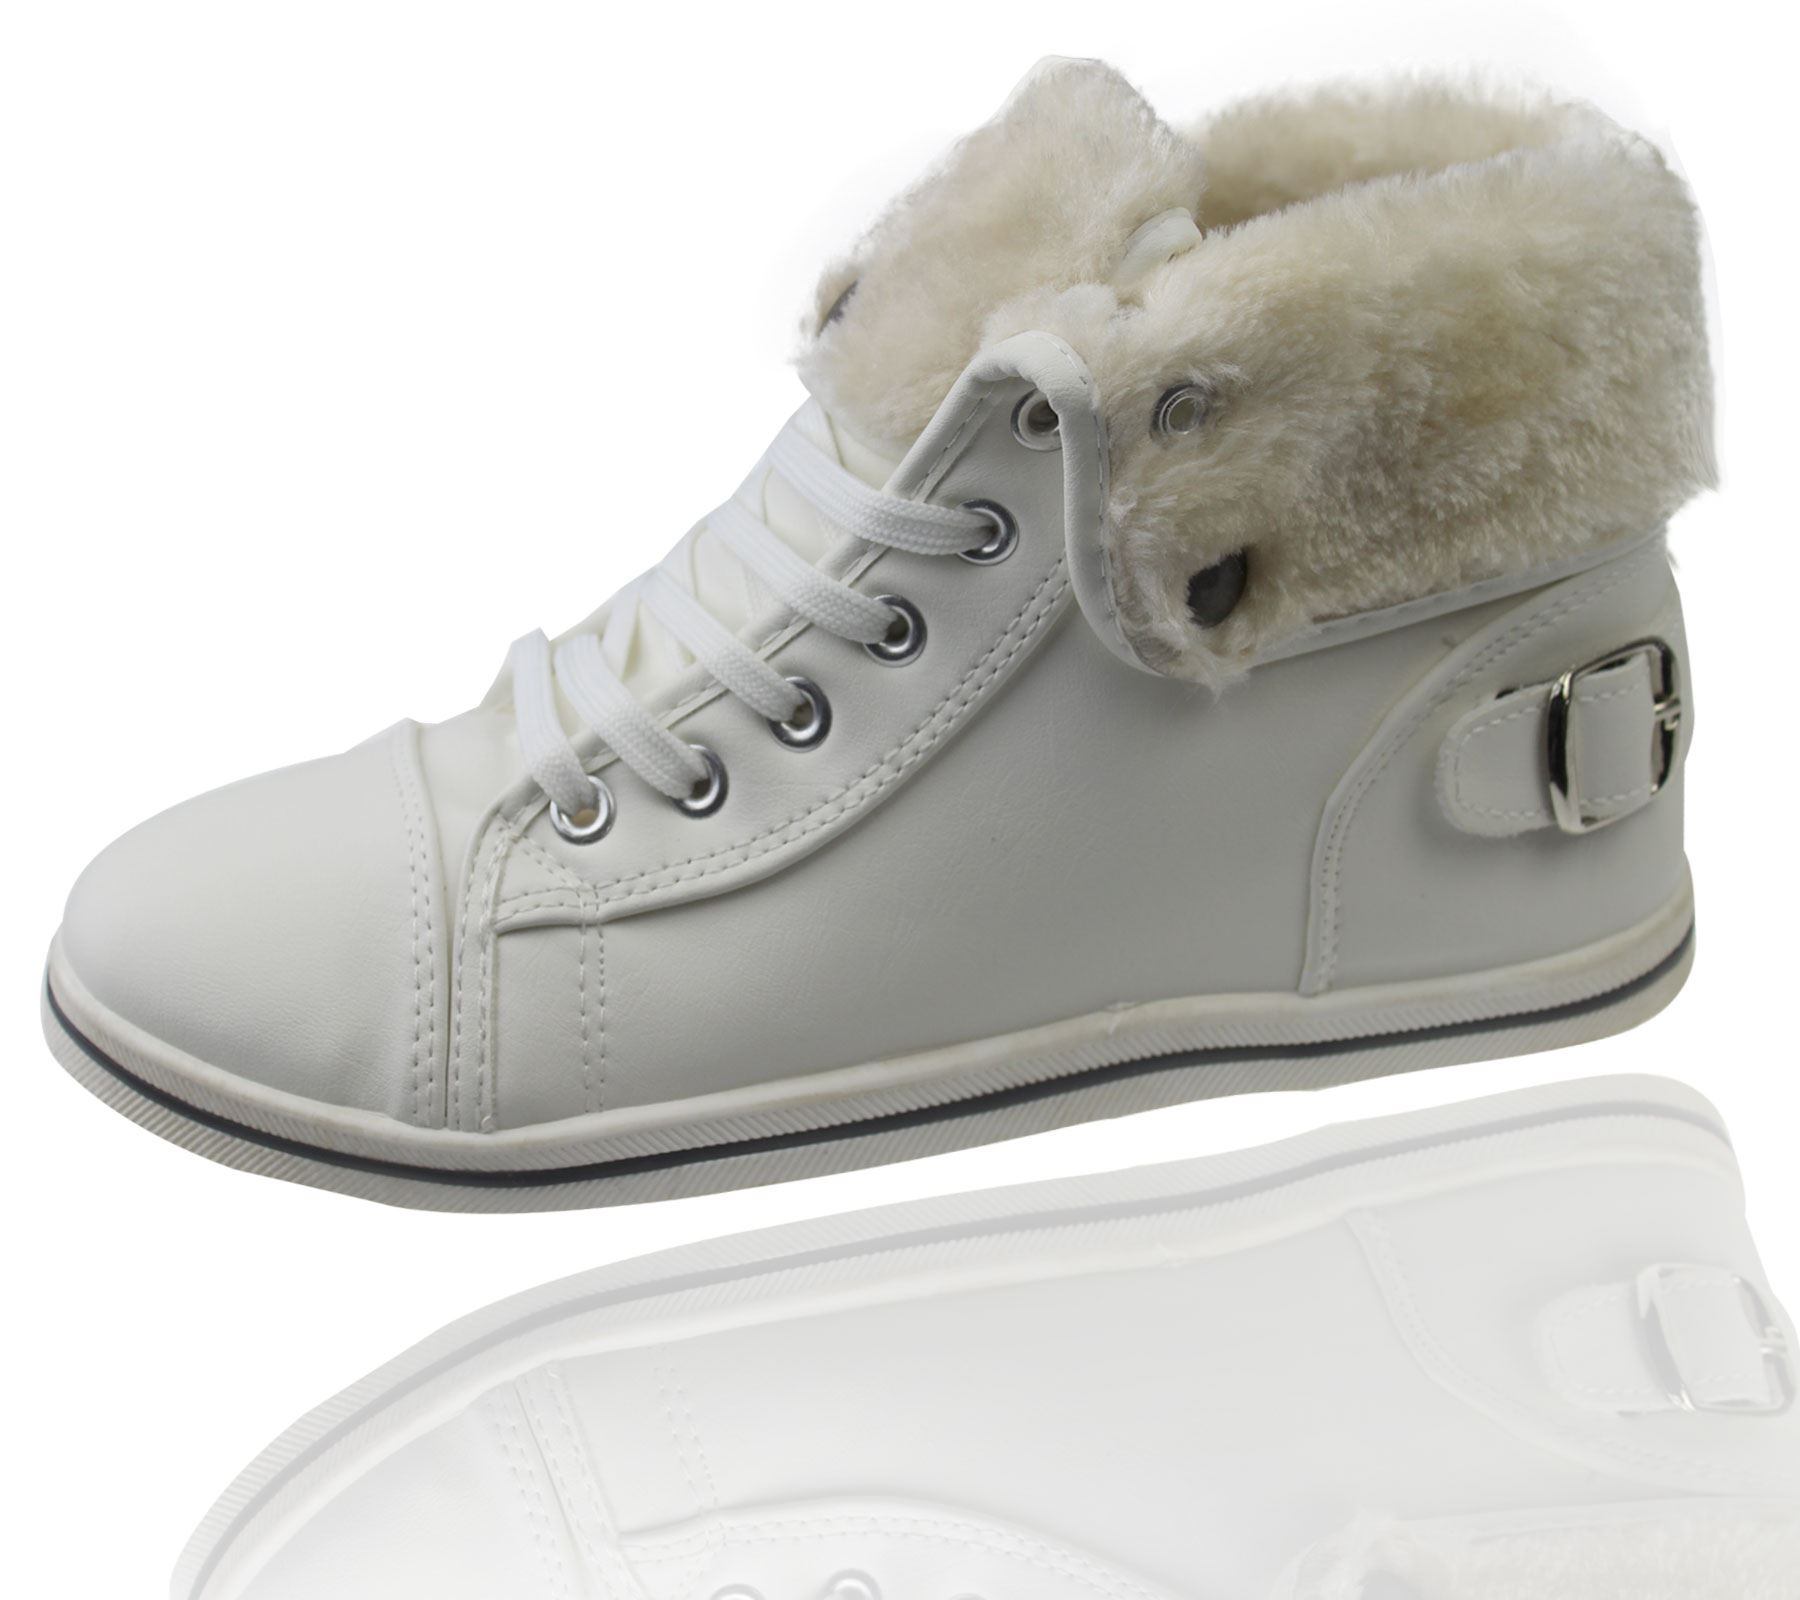 Girls-Boots-Womens-Warm-Lined-High-Top-Ankle-Trainer-Ladies-Winter-Shoes-Size miniatura 66